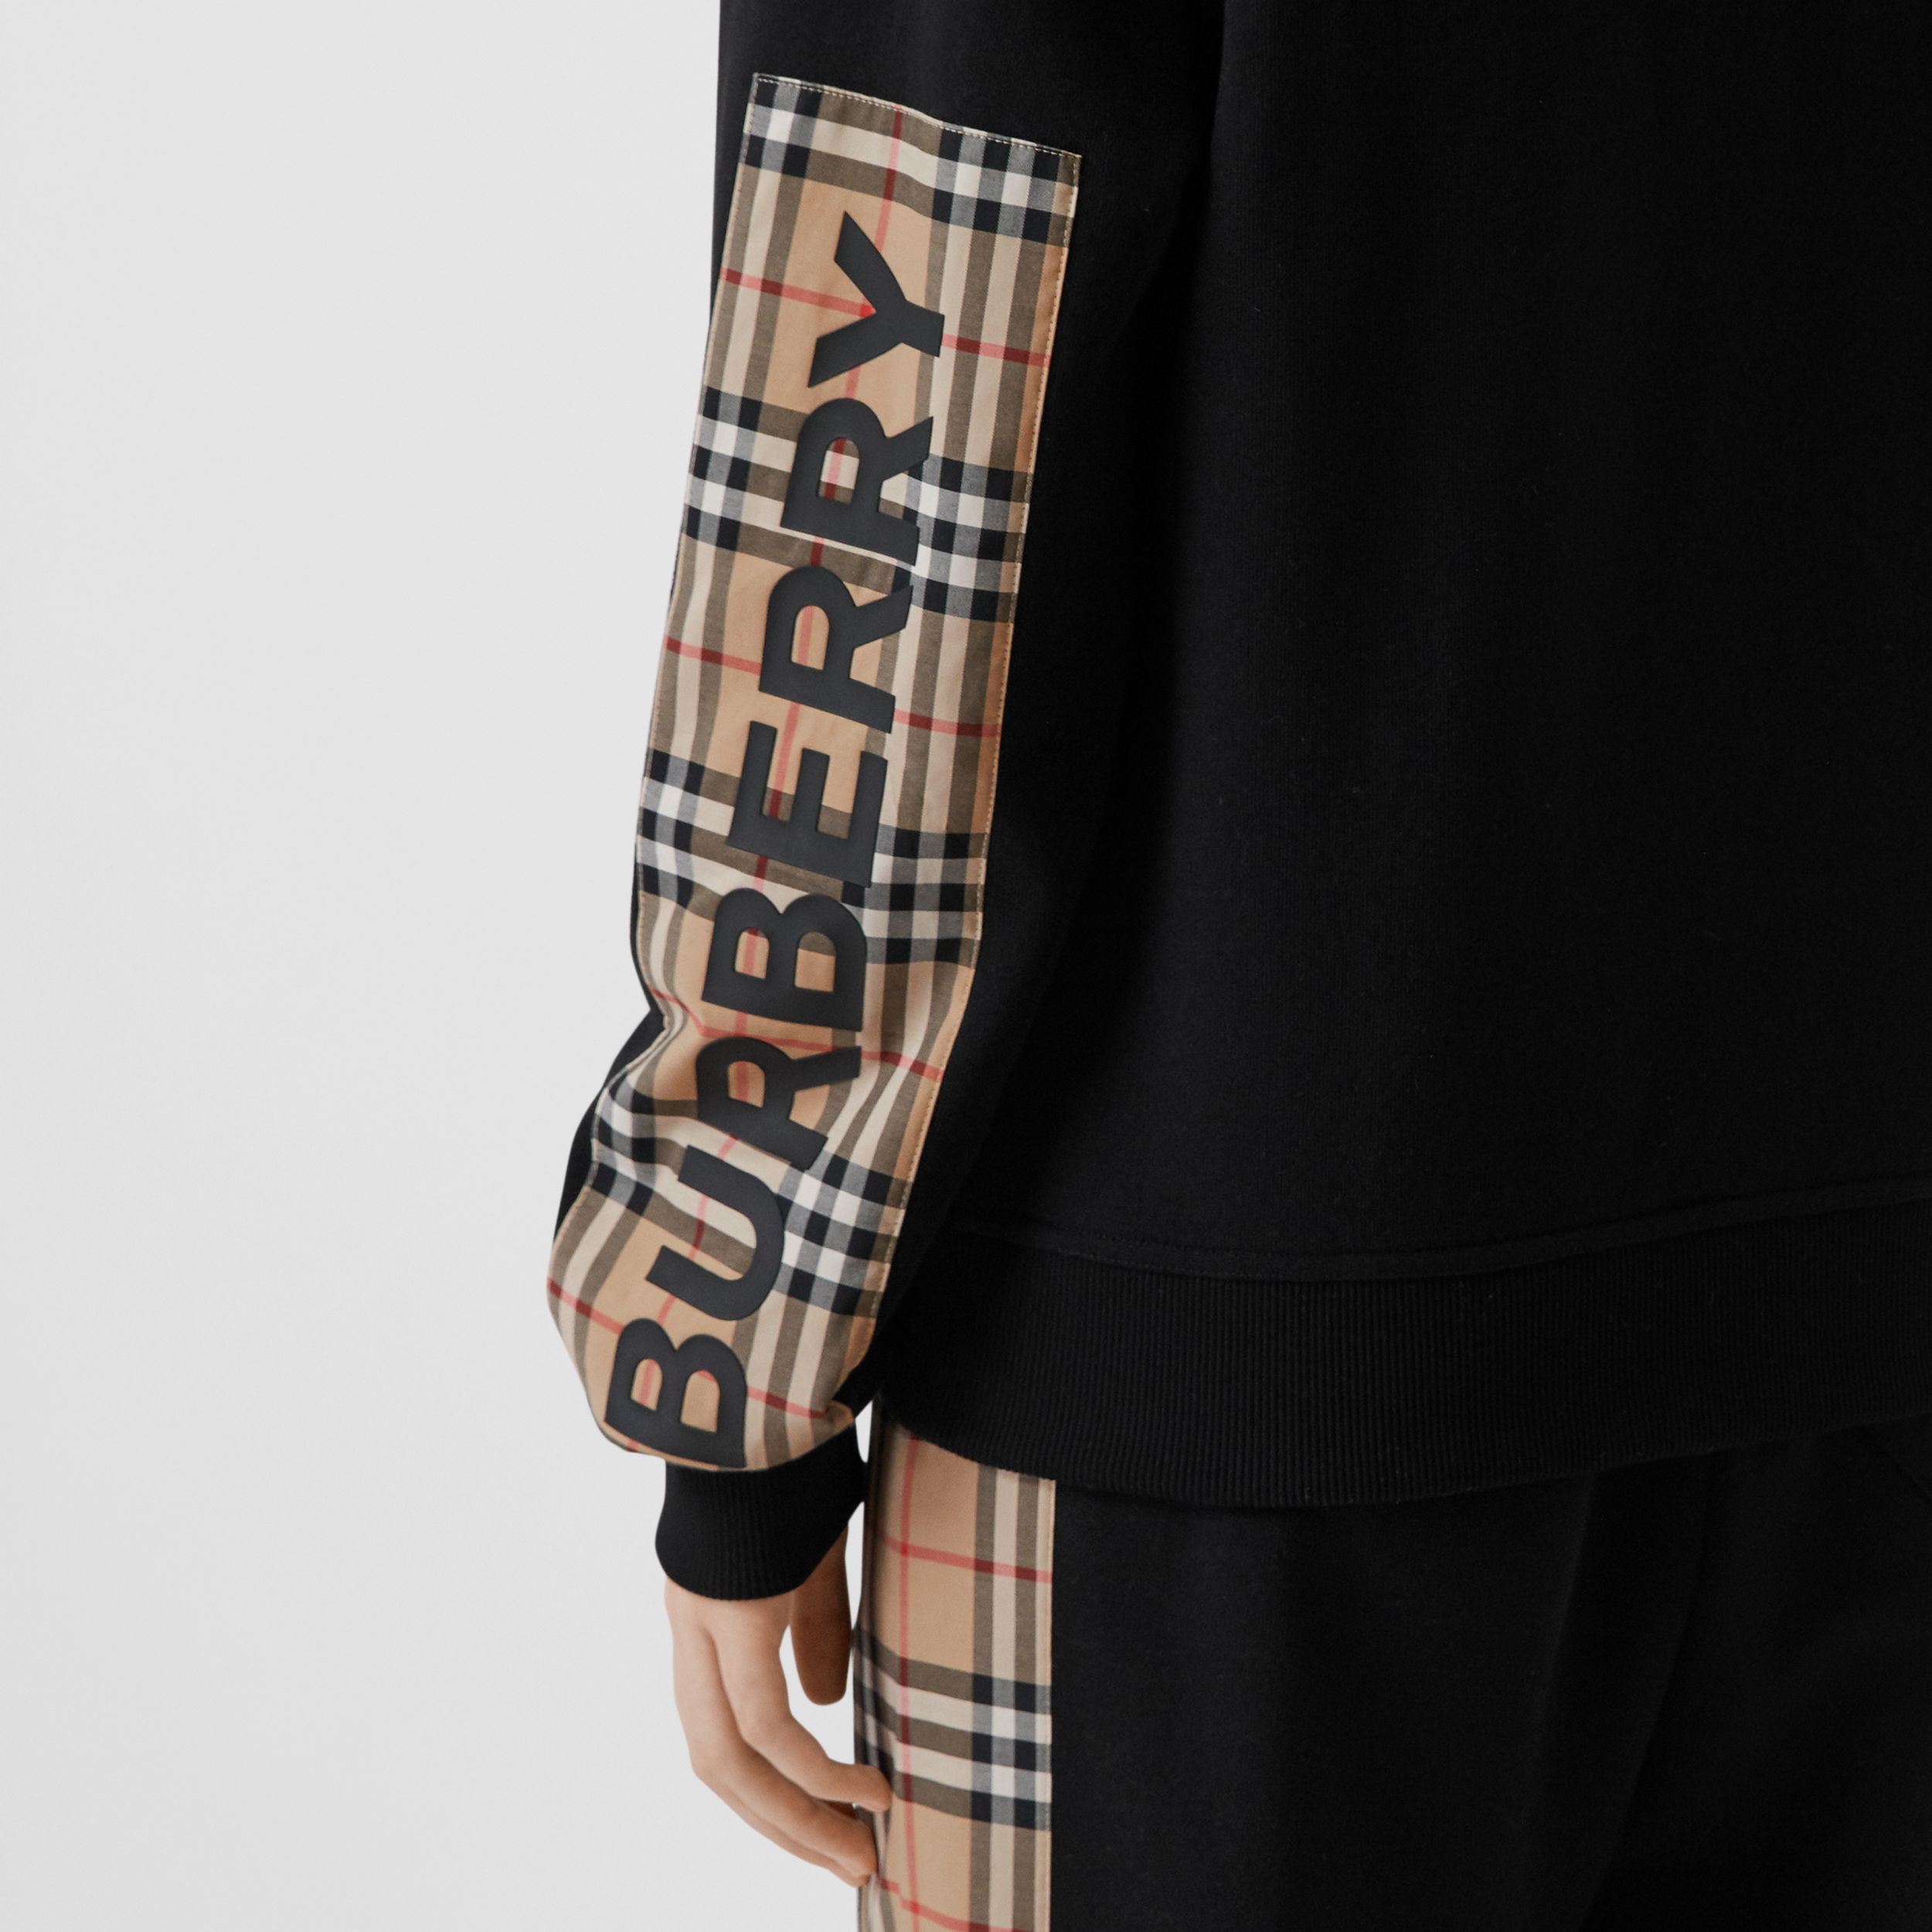 Vintage Check Panel Cotton Oversized Hooded Top in Black - Women | Burberry Canada - 2